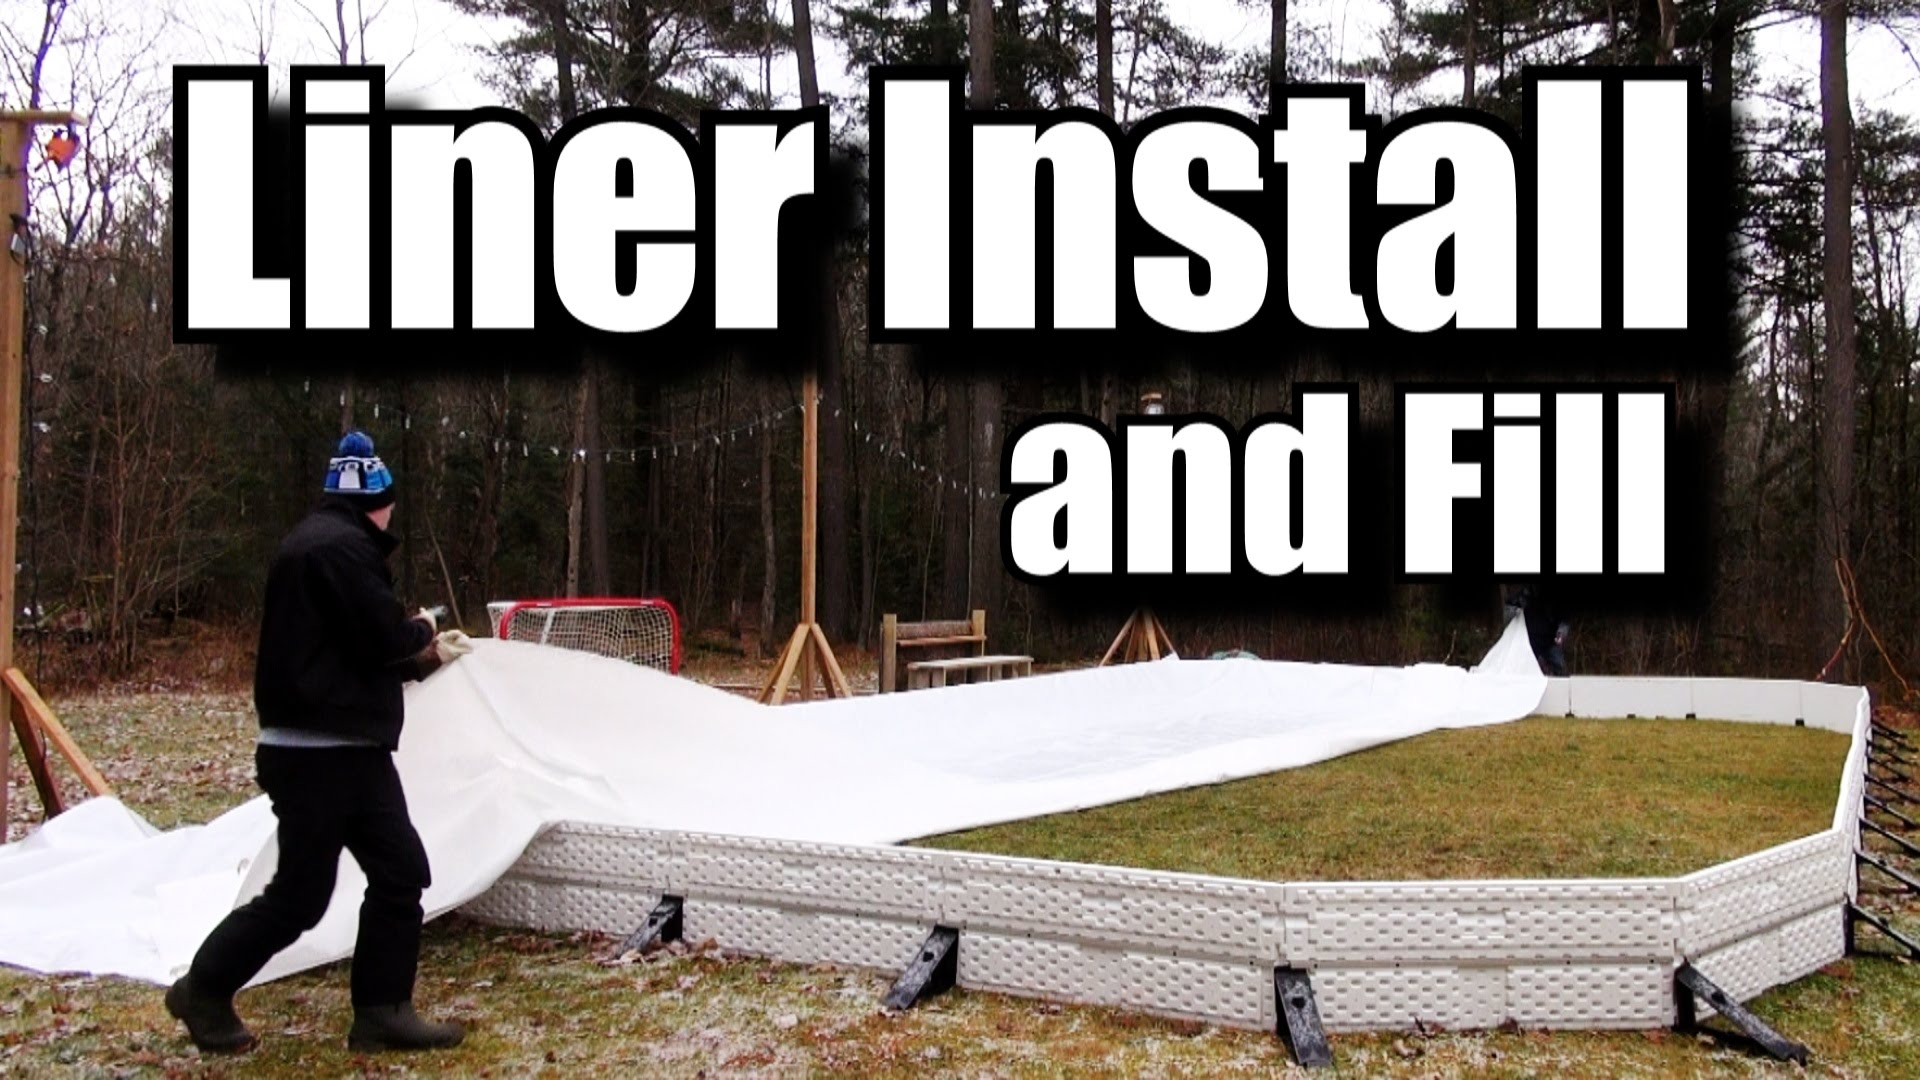 Backyard Rink Liner : How to Install a backyard rink Liner and Fill It